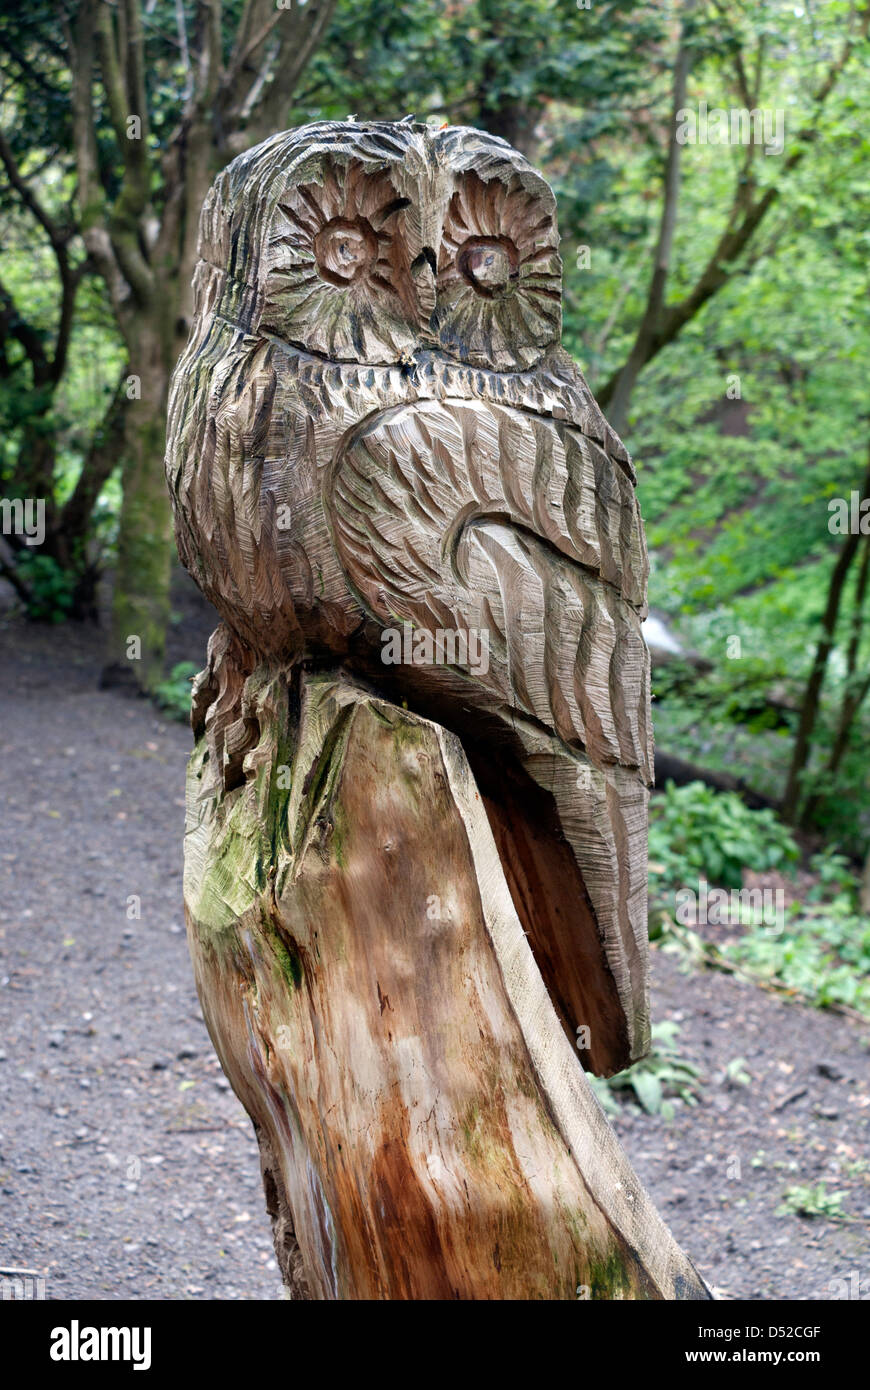 Owl carving stock photos owl carving stock images alamy